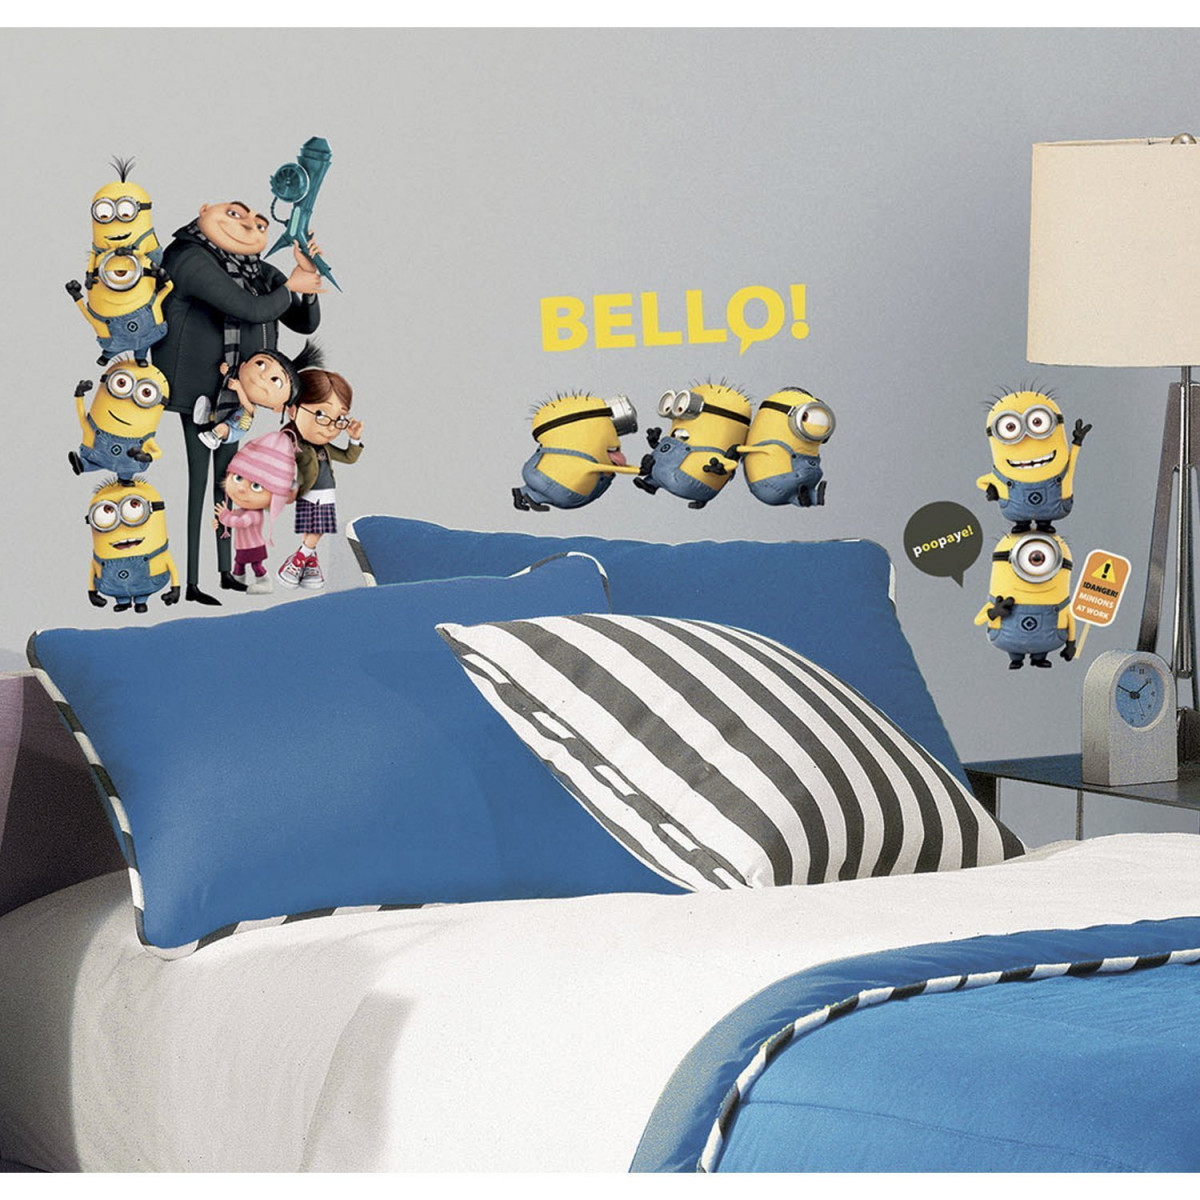 31 stickers repositionnables Les Minions